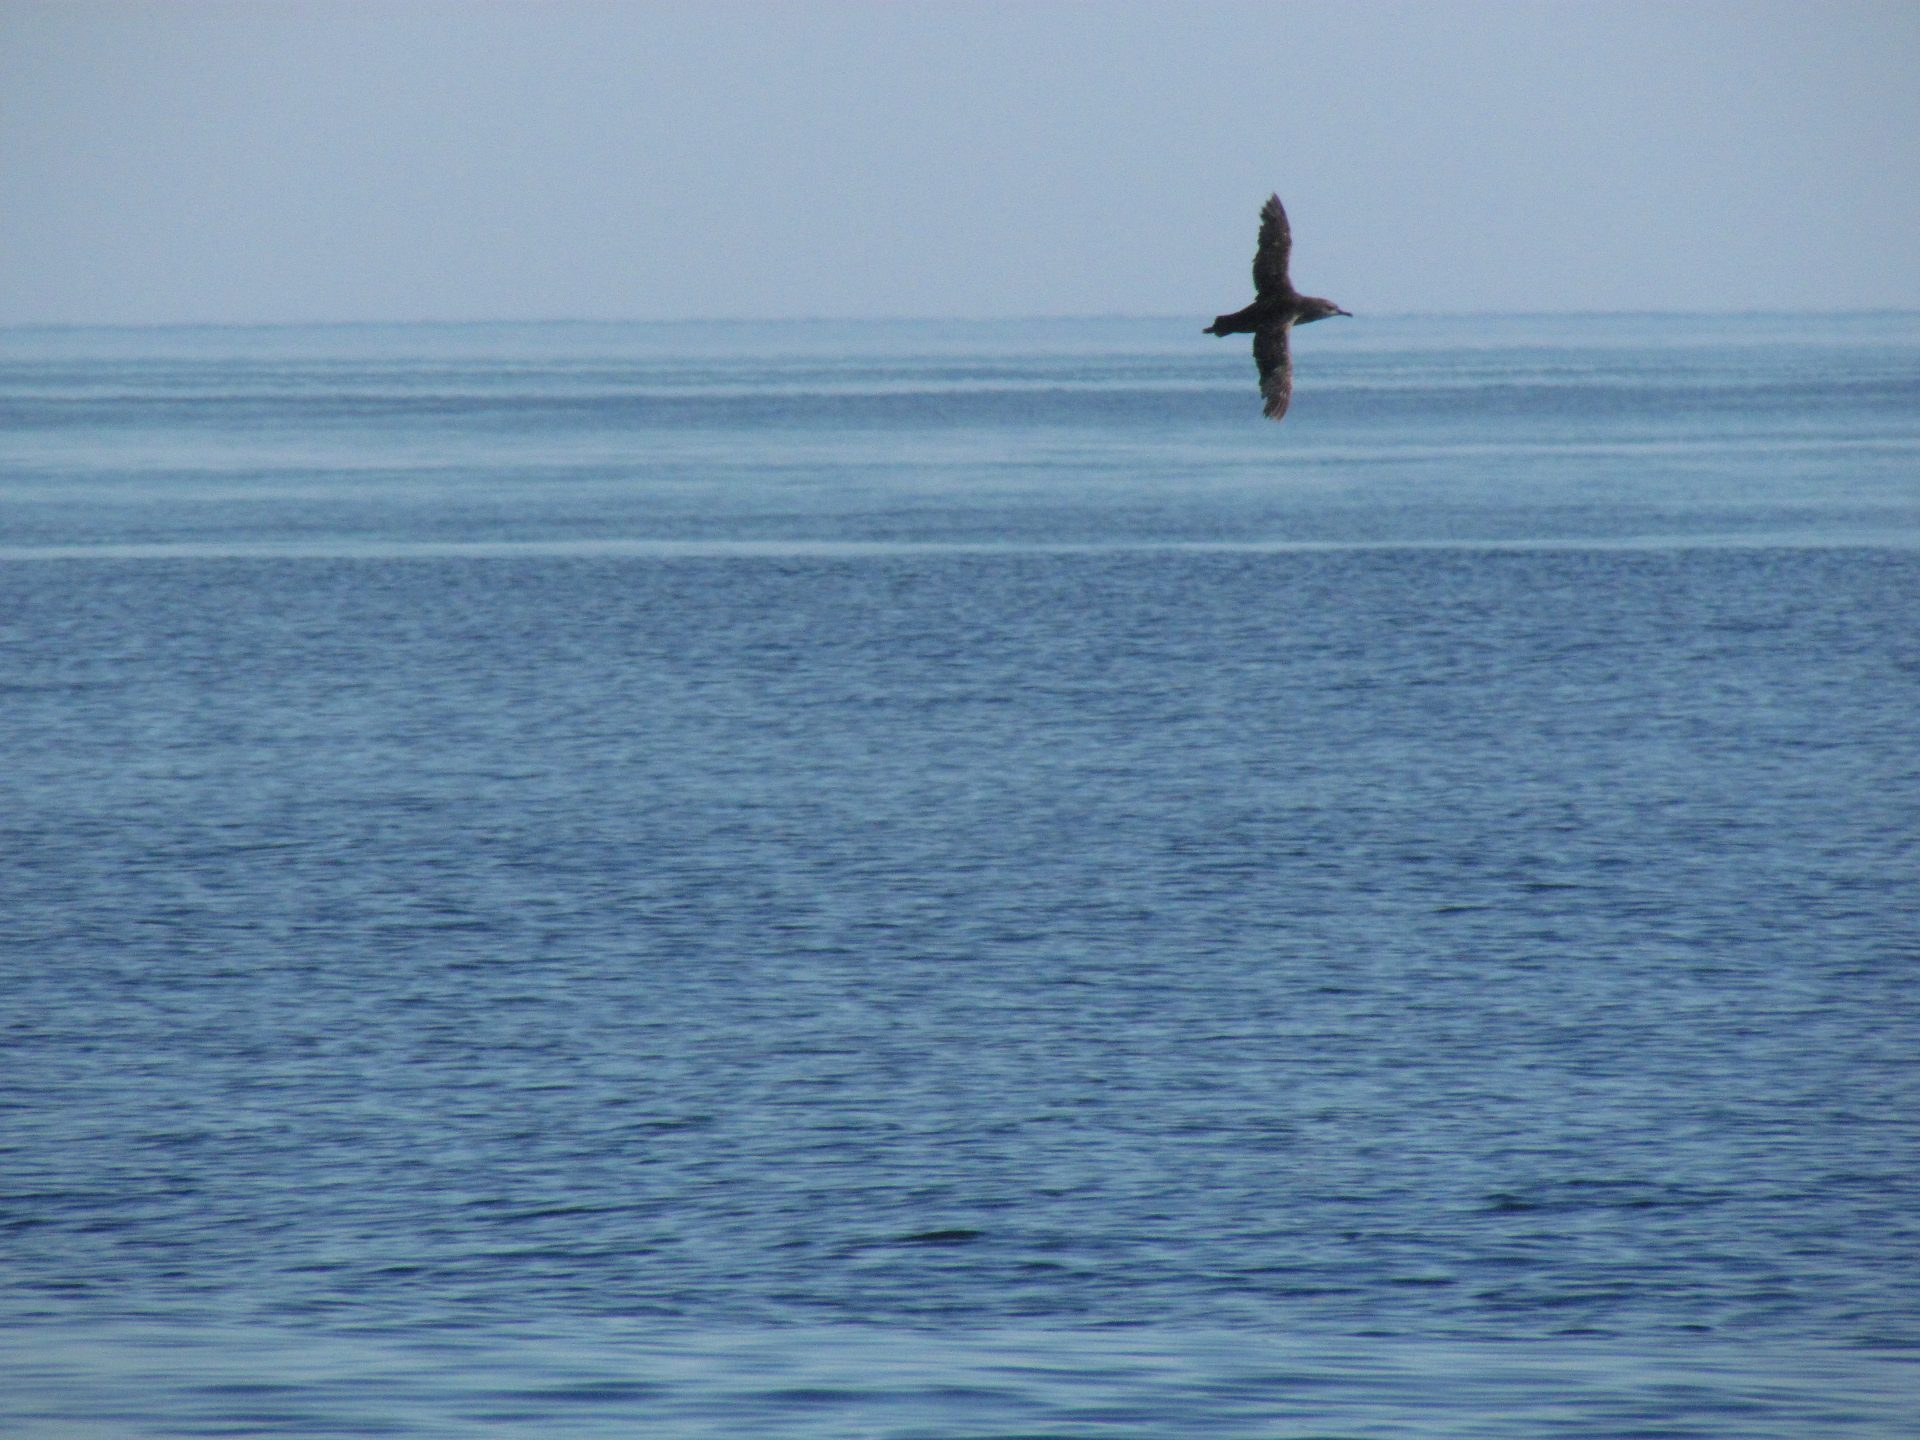 Balearic Shearwater flying over the sea